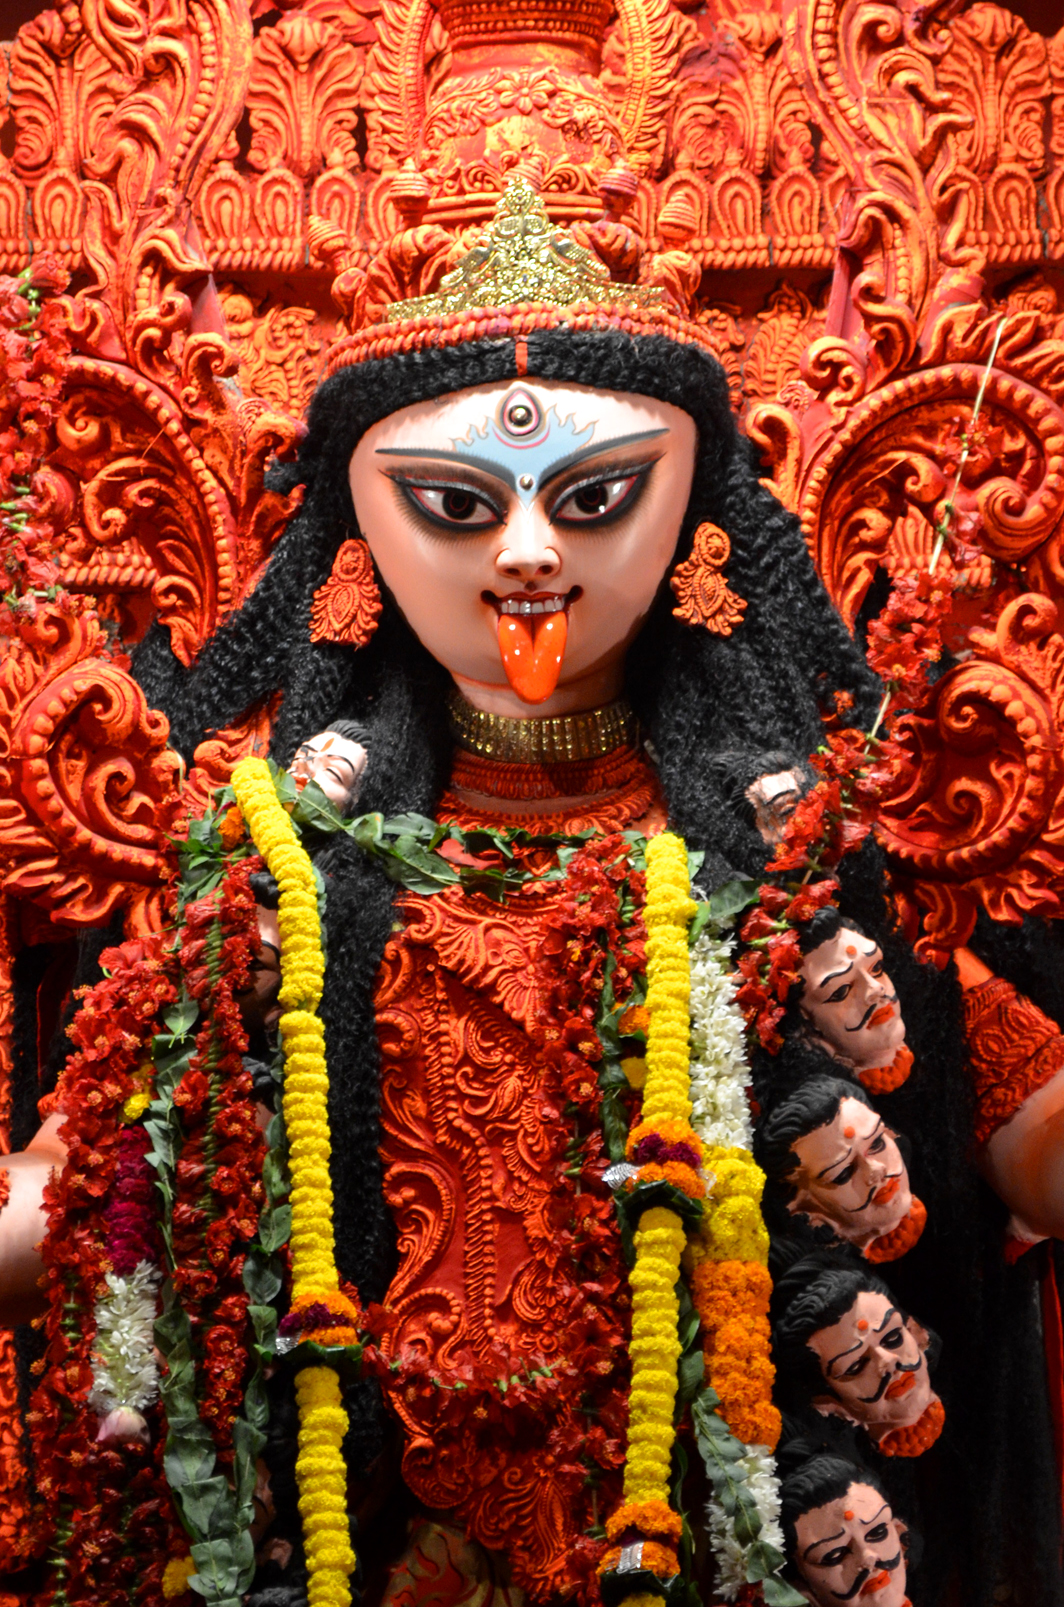 kali puja Devi, as she is called in sanskrit, is the supreme goddess of indian hindu traditionshe is multifaceted and universal in appeal however, understanding devi, particularly from a western perspective, is frighteningly difficult.